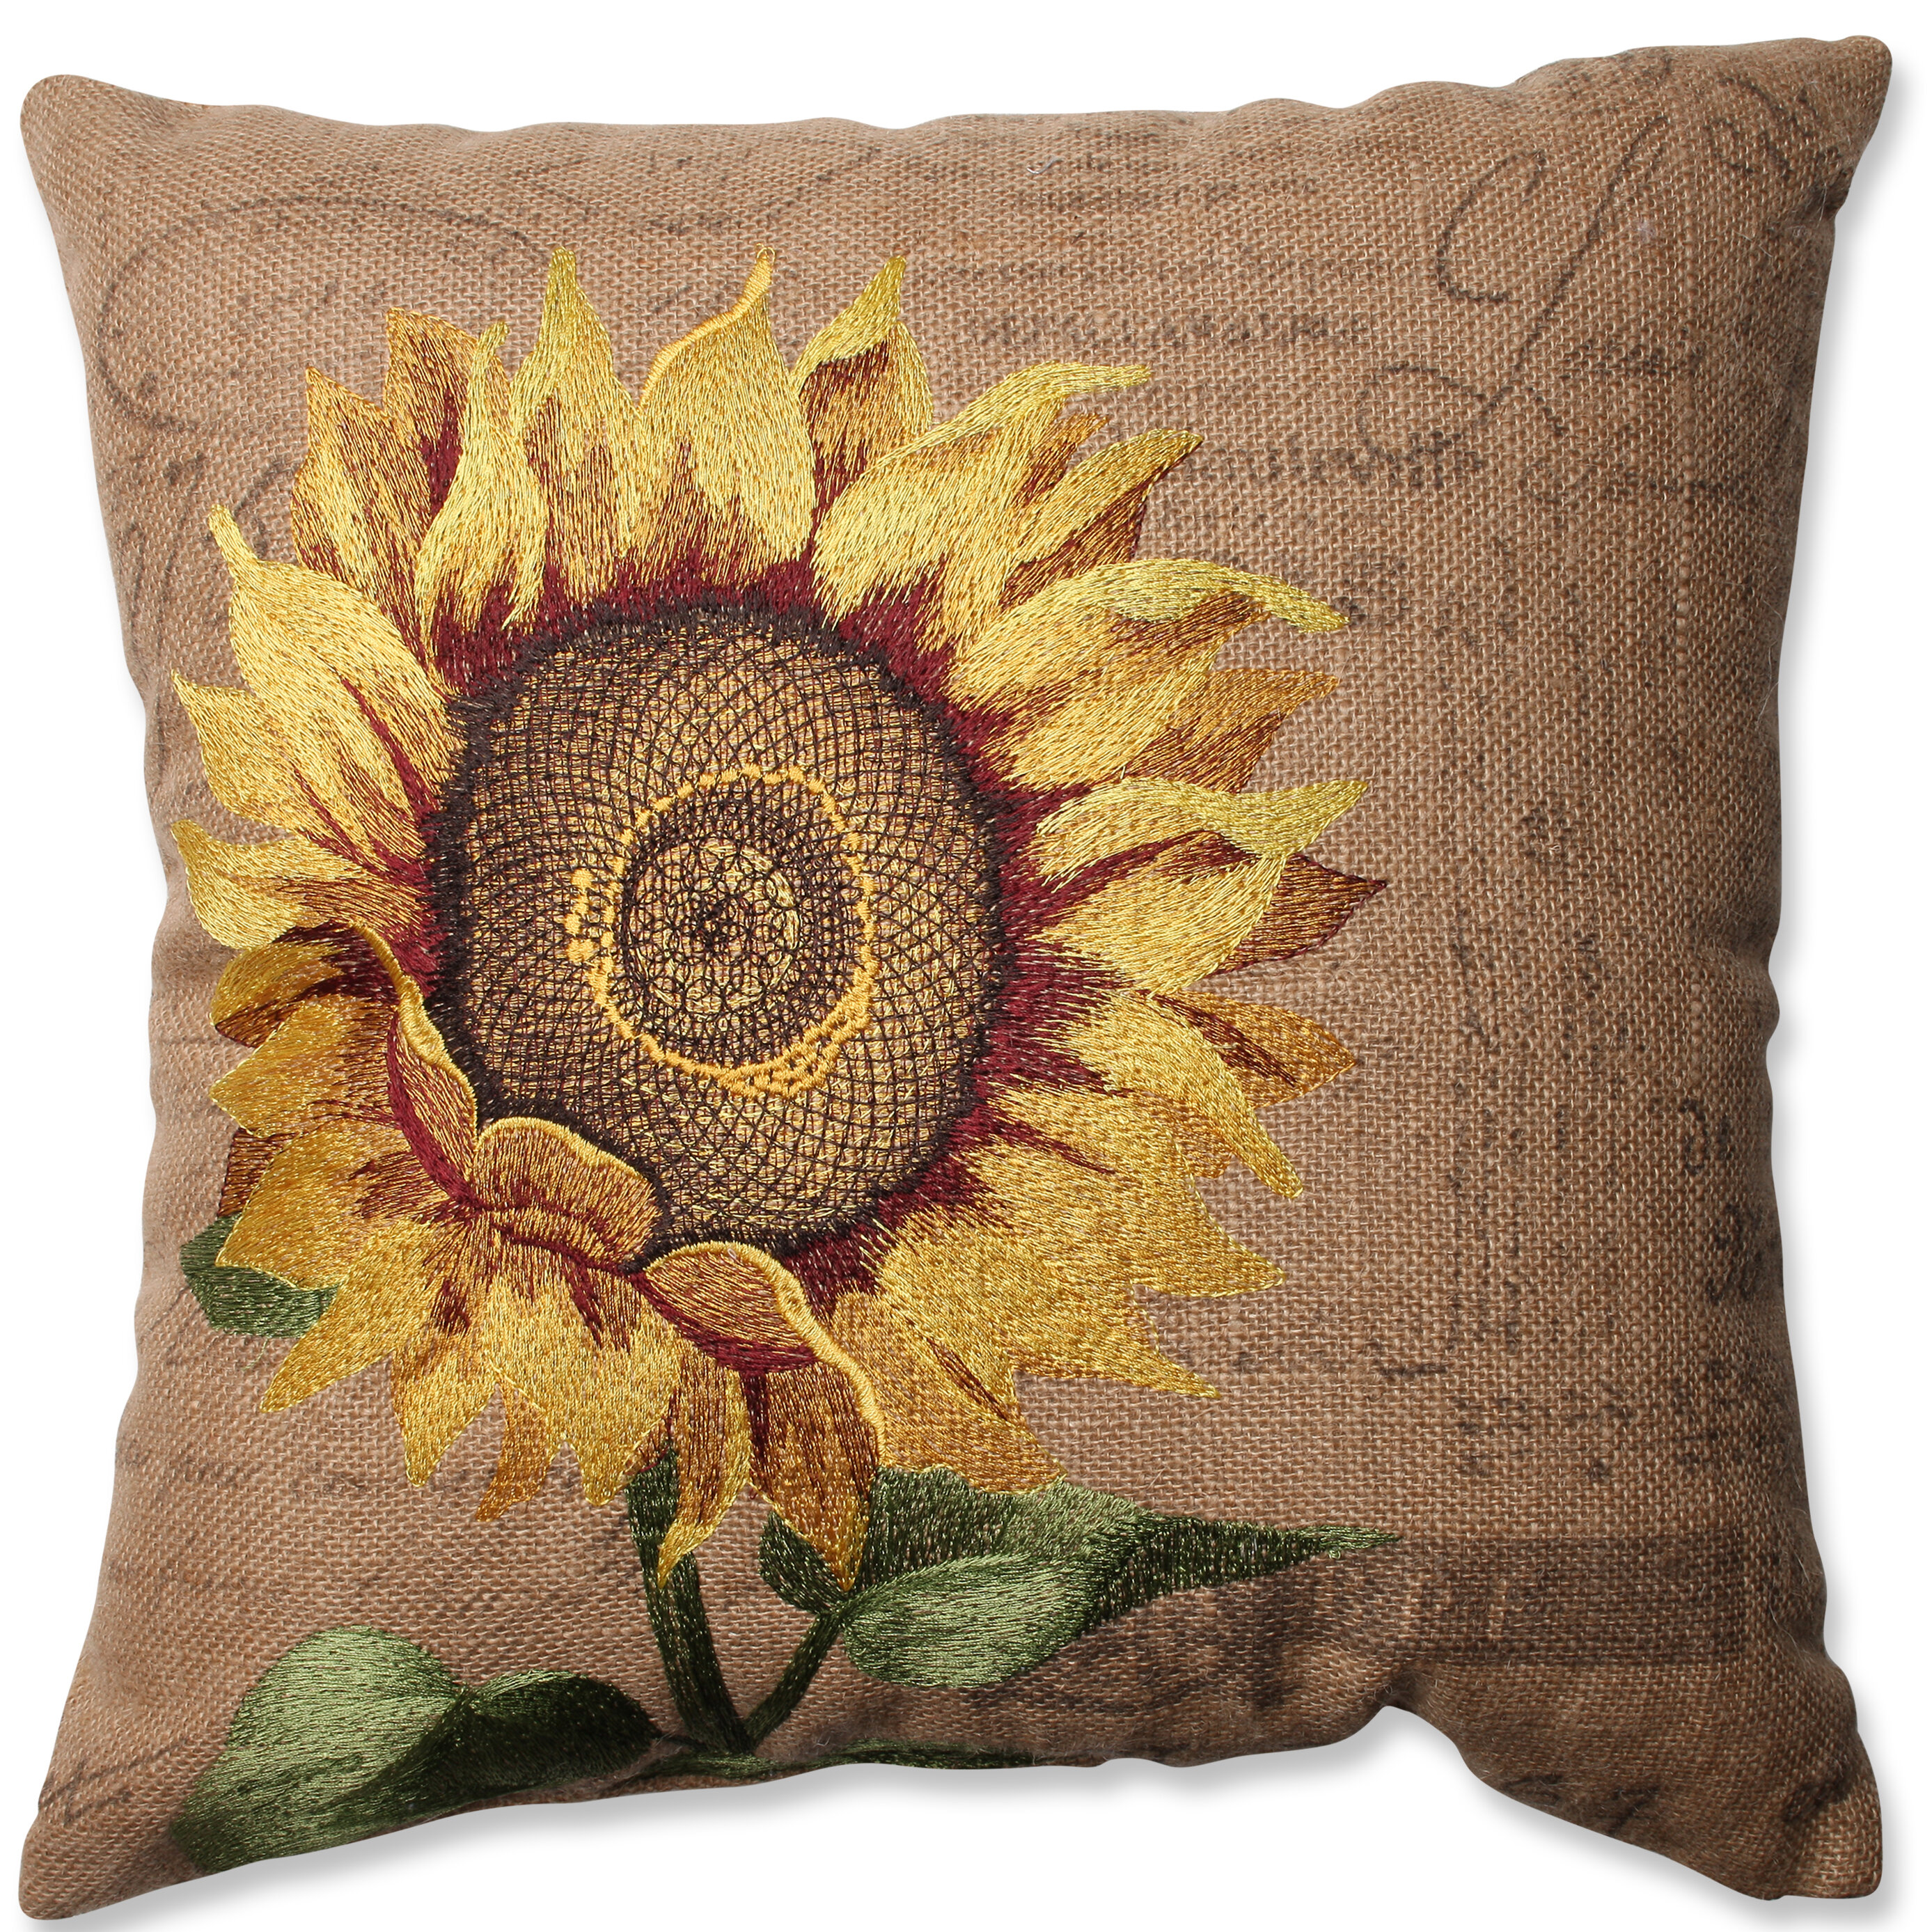 Pillow Perfect Sunflower Jute Throw Pillow Reviews Wayfair